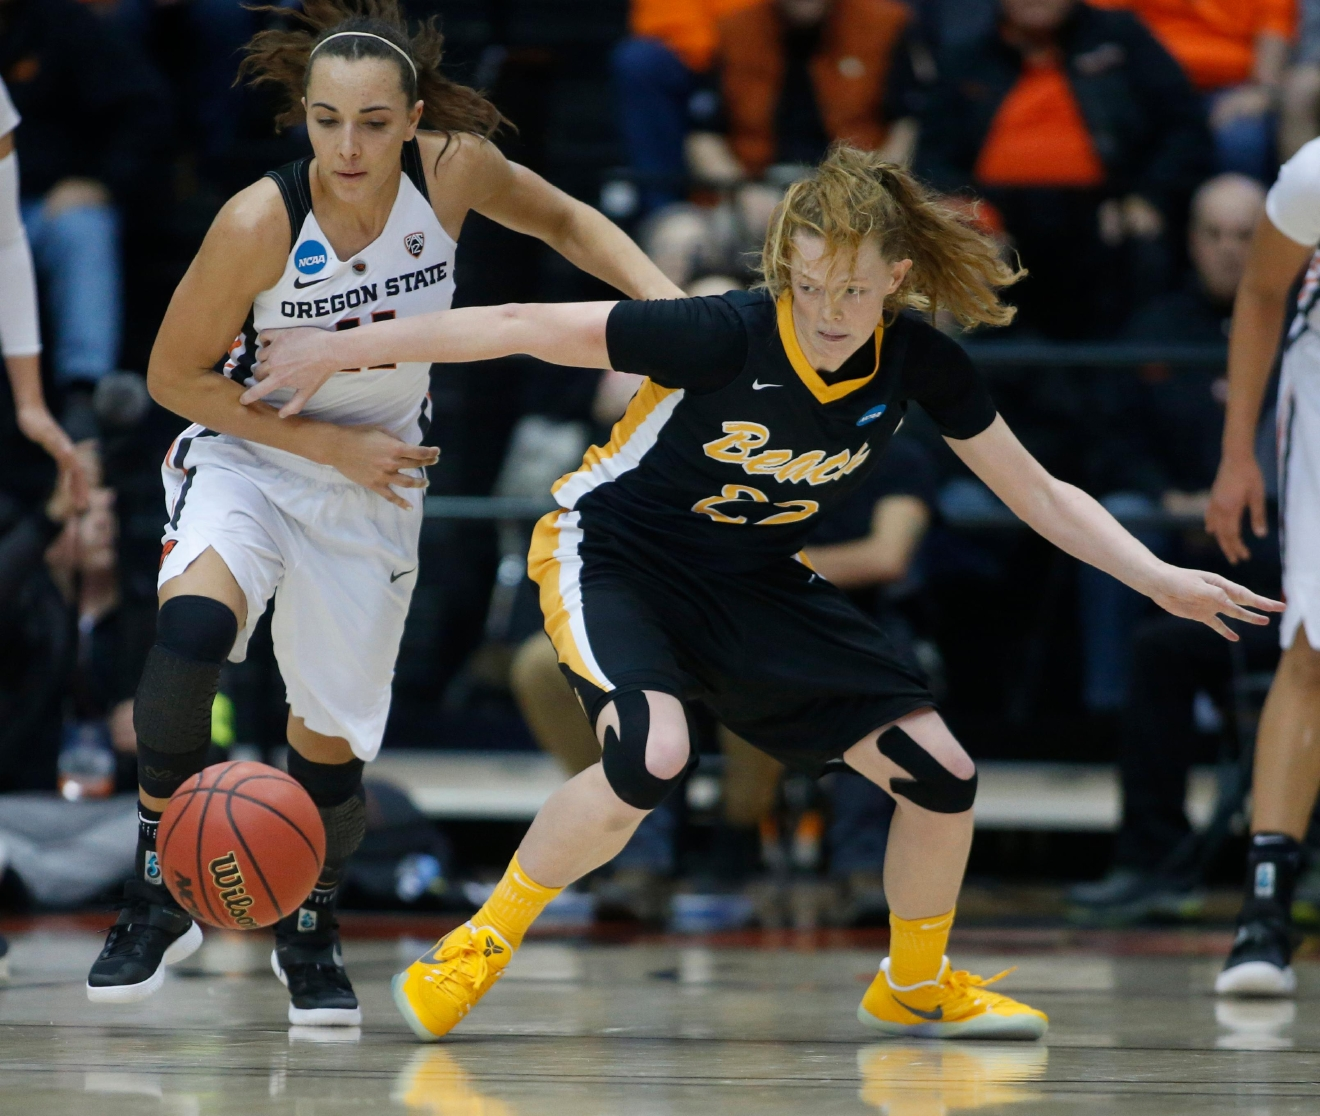 Oregon State's Gabriella Hanson, left, and Long Beach State's Madison Montgomery chase after a loose ball during the second half of a first-round game in the women's NCAA college basketball tournament Friday, March 17, 2017, in Corvallis, Ore. (AP Photo/ Timothy J. Gonzalez)